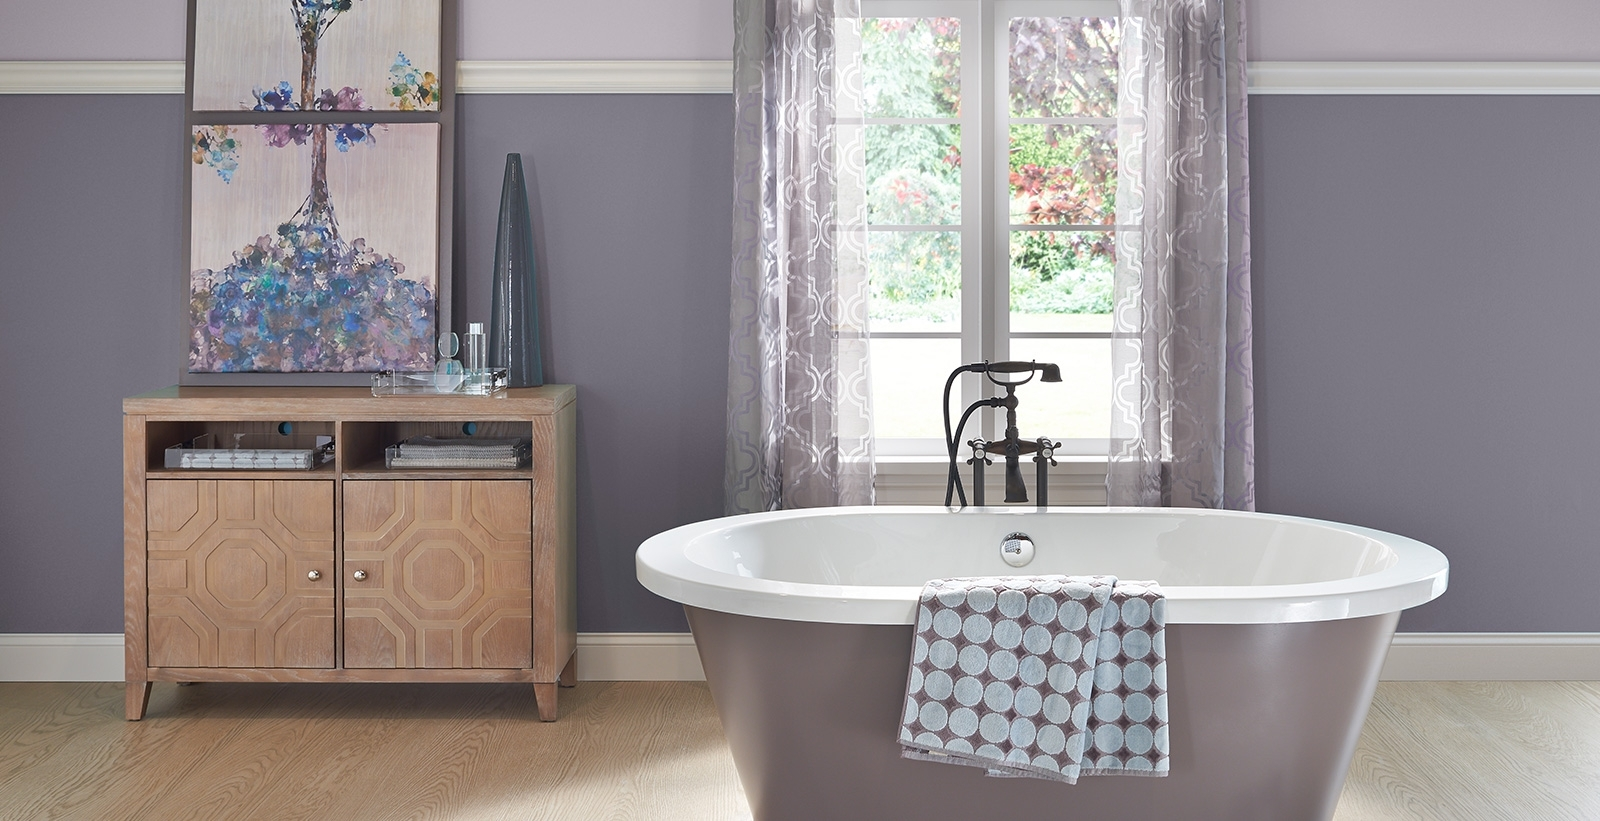 Calming Bathroom Ideas And Inspirational Paint Colors | Behr 10+ Bathroom Paint Color Behr Ideas